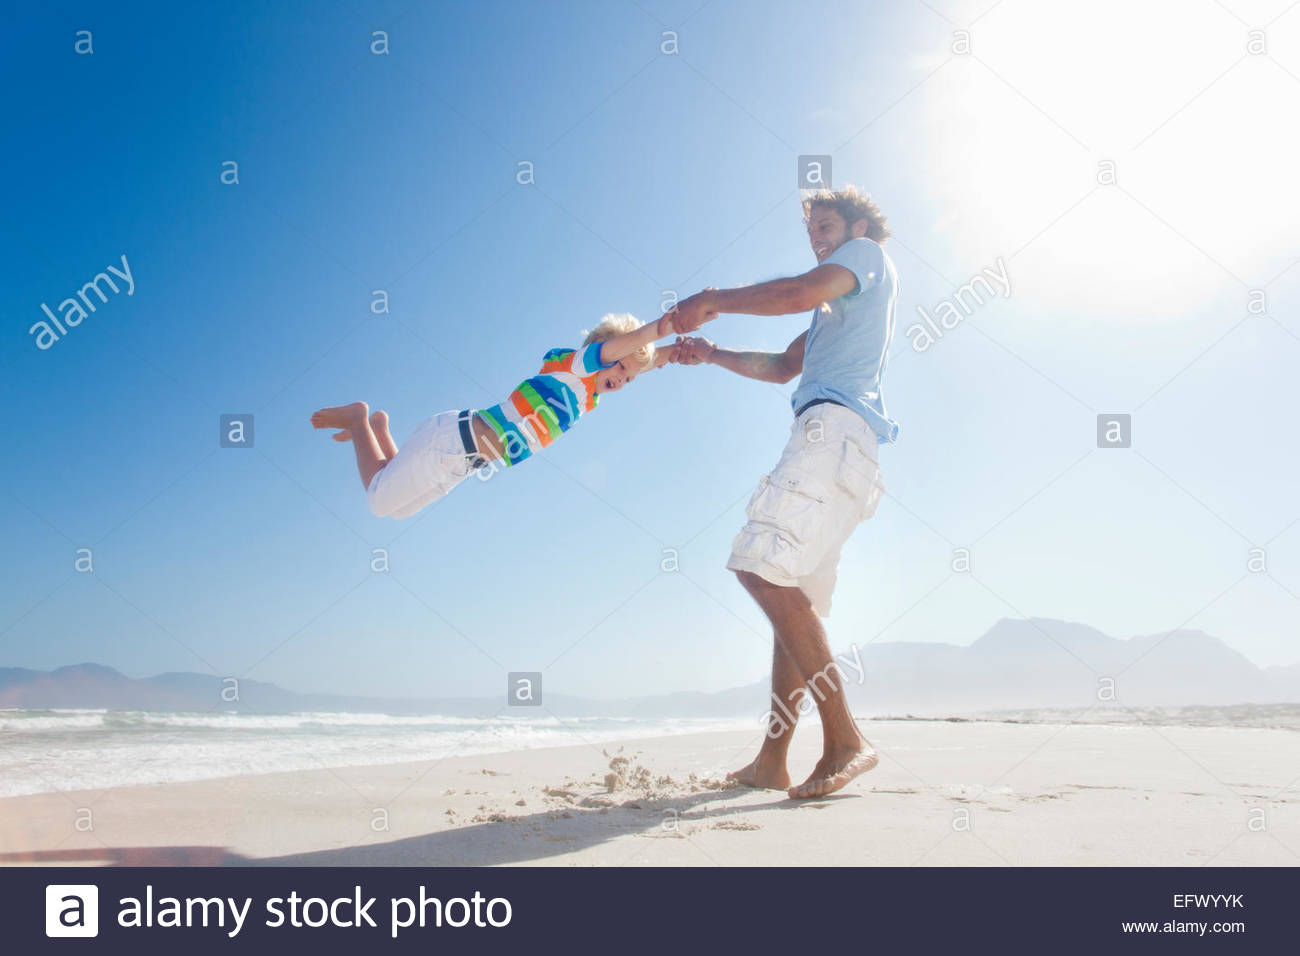 Smiling Father swinging son around playfully on sunny beach - Stock Image